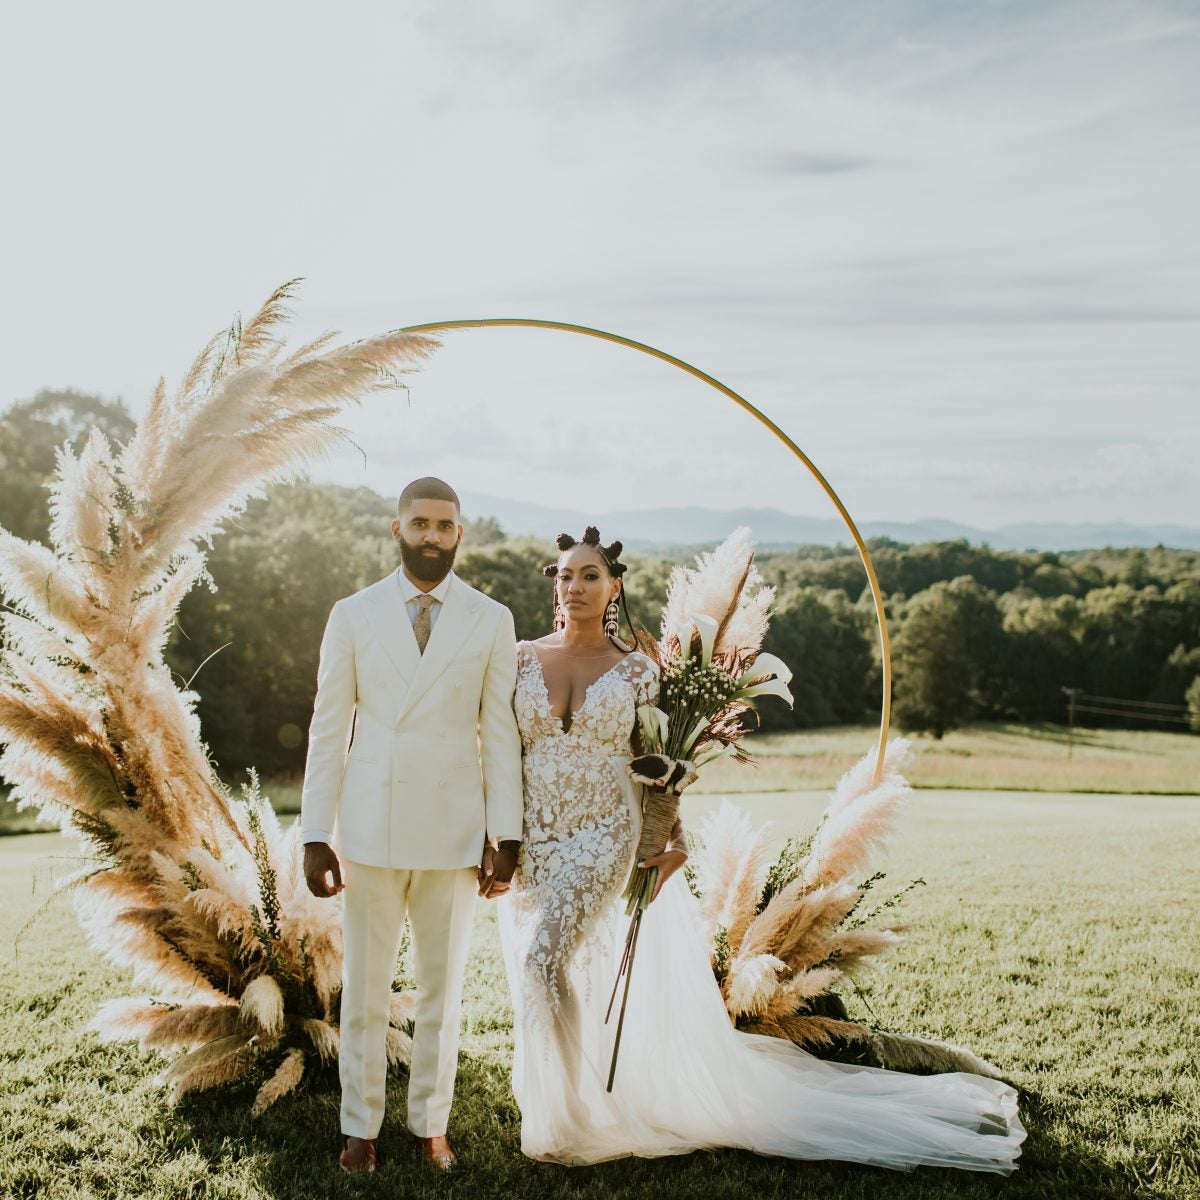 Rosco And Matthew's Ethereal North Carolina Wedding Was Intimate and Magical